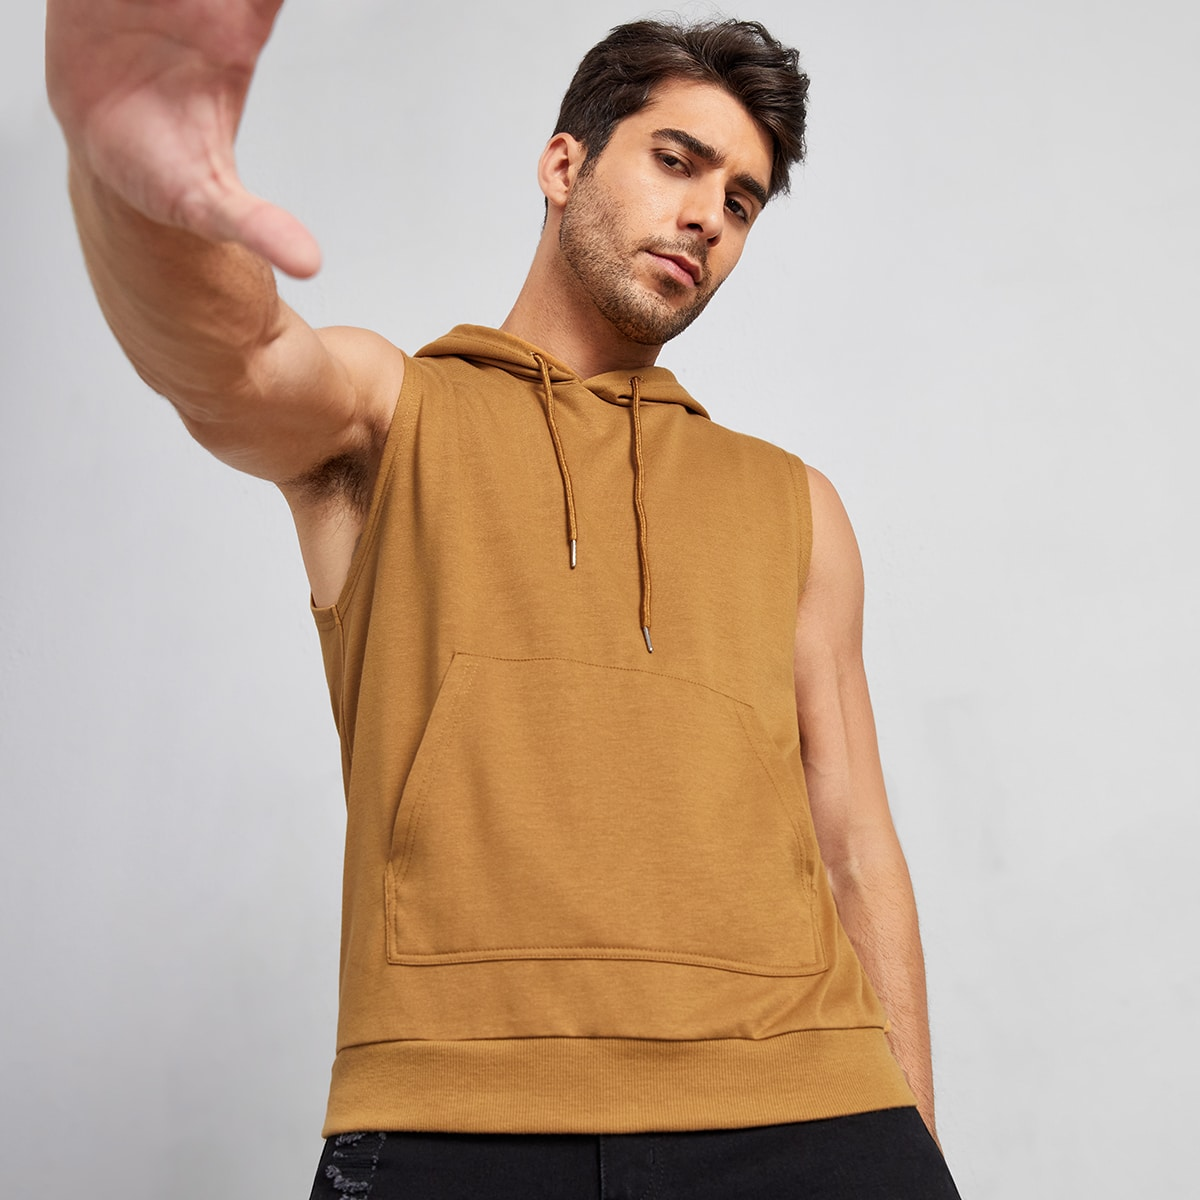 Men Pocket Front Sleeveless Drawstring Hoodie, SHEIN  - buy with discount